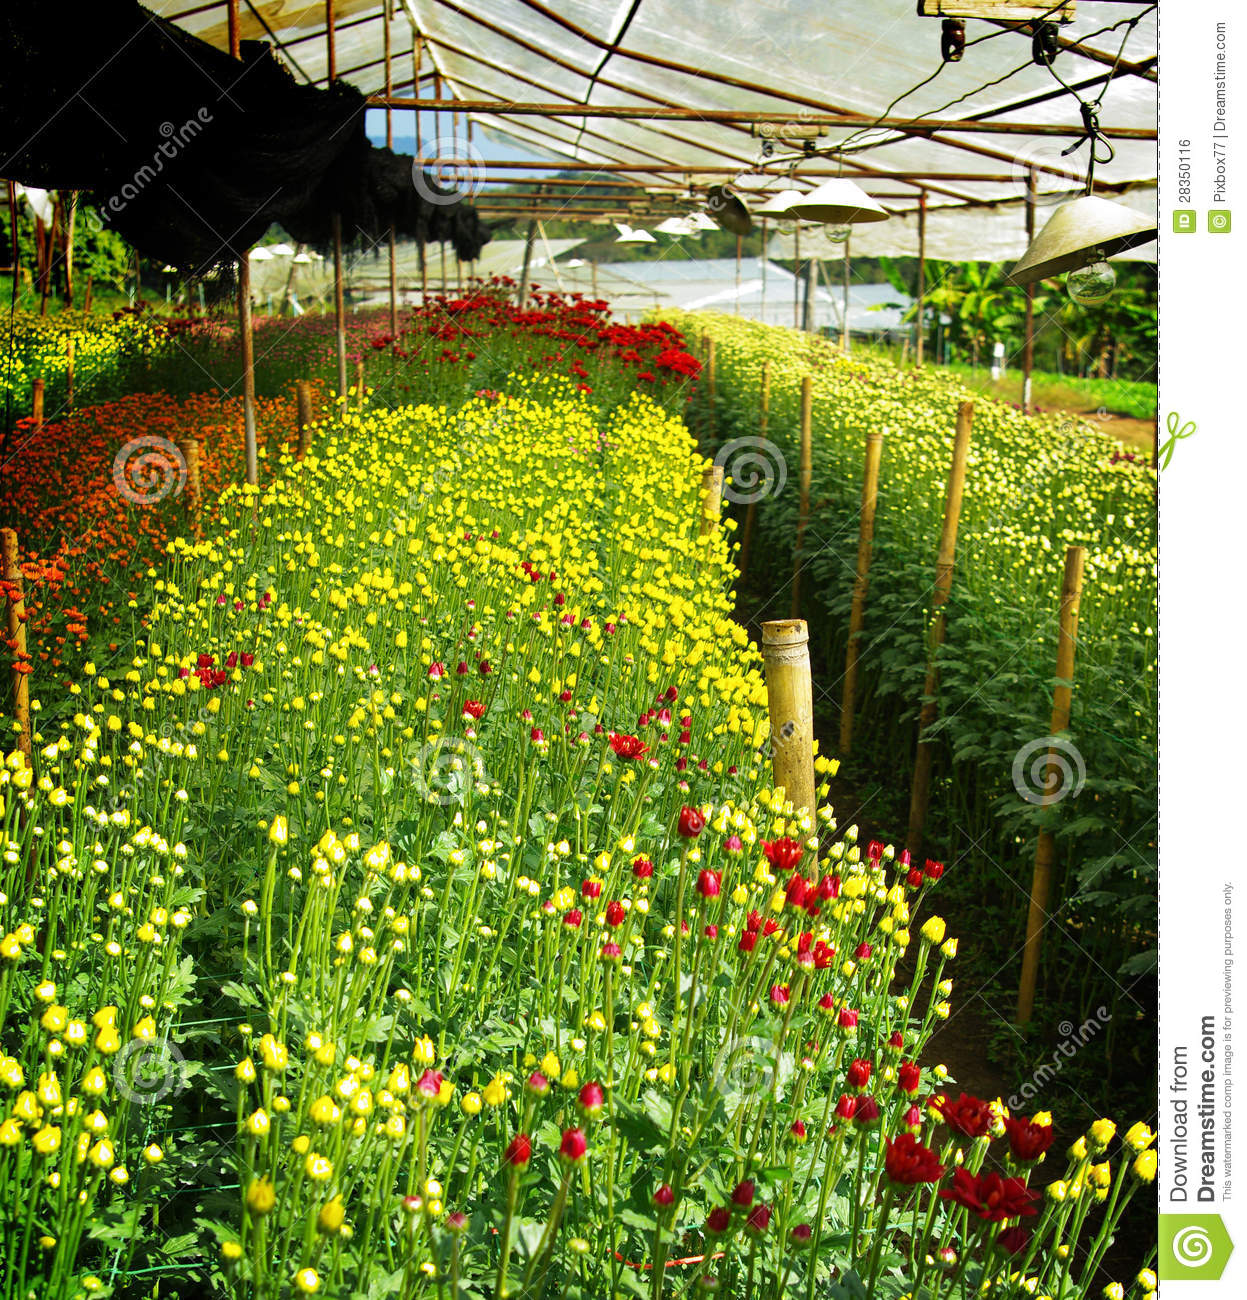 flower farming business plan in india